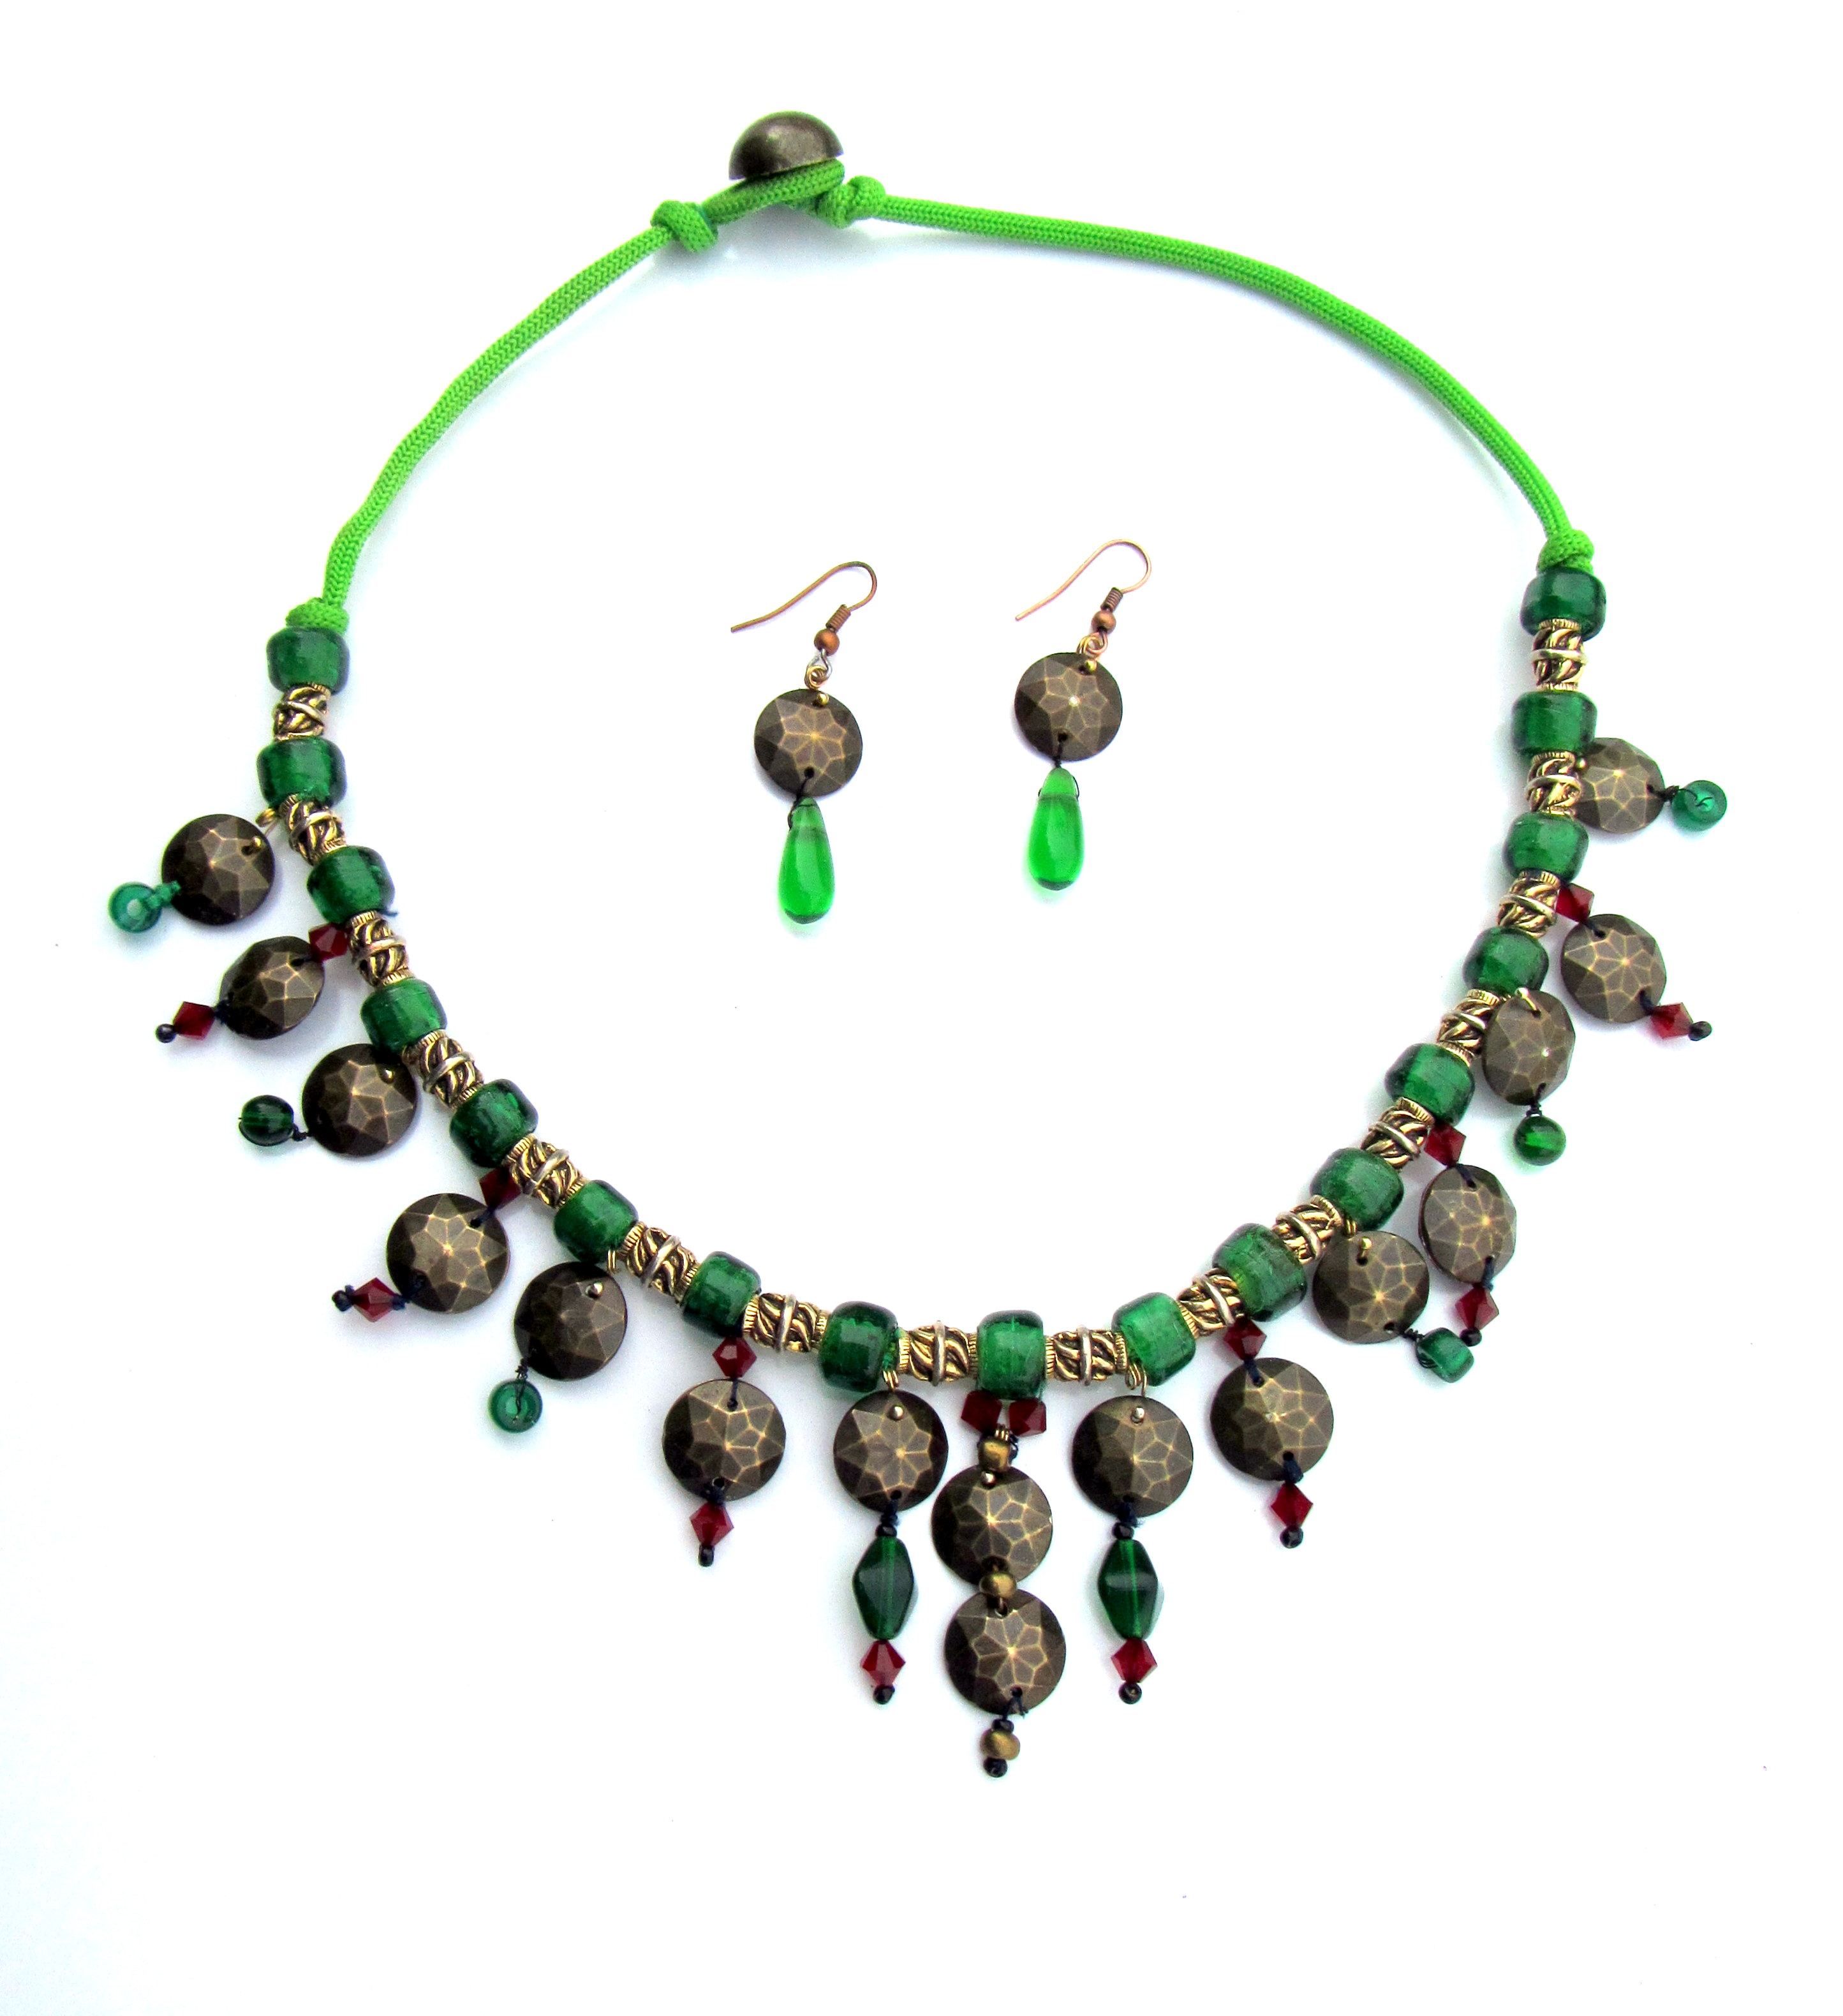 Set of jewelery made of green glass